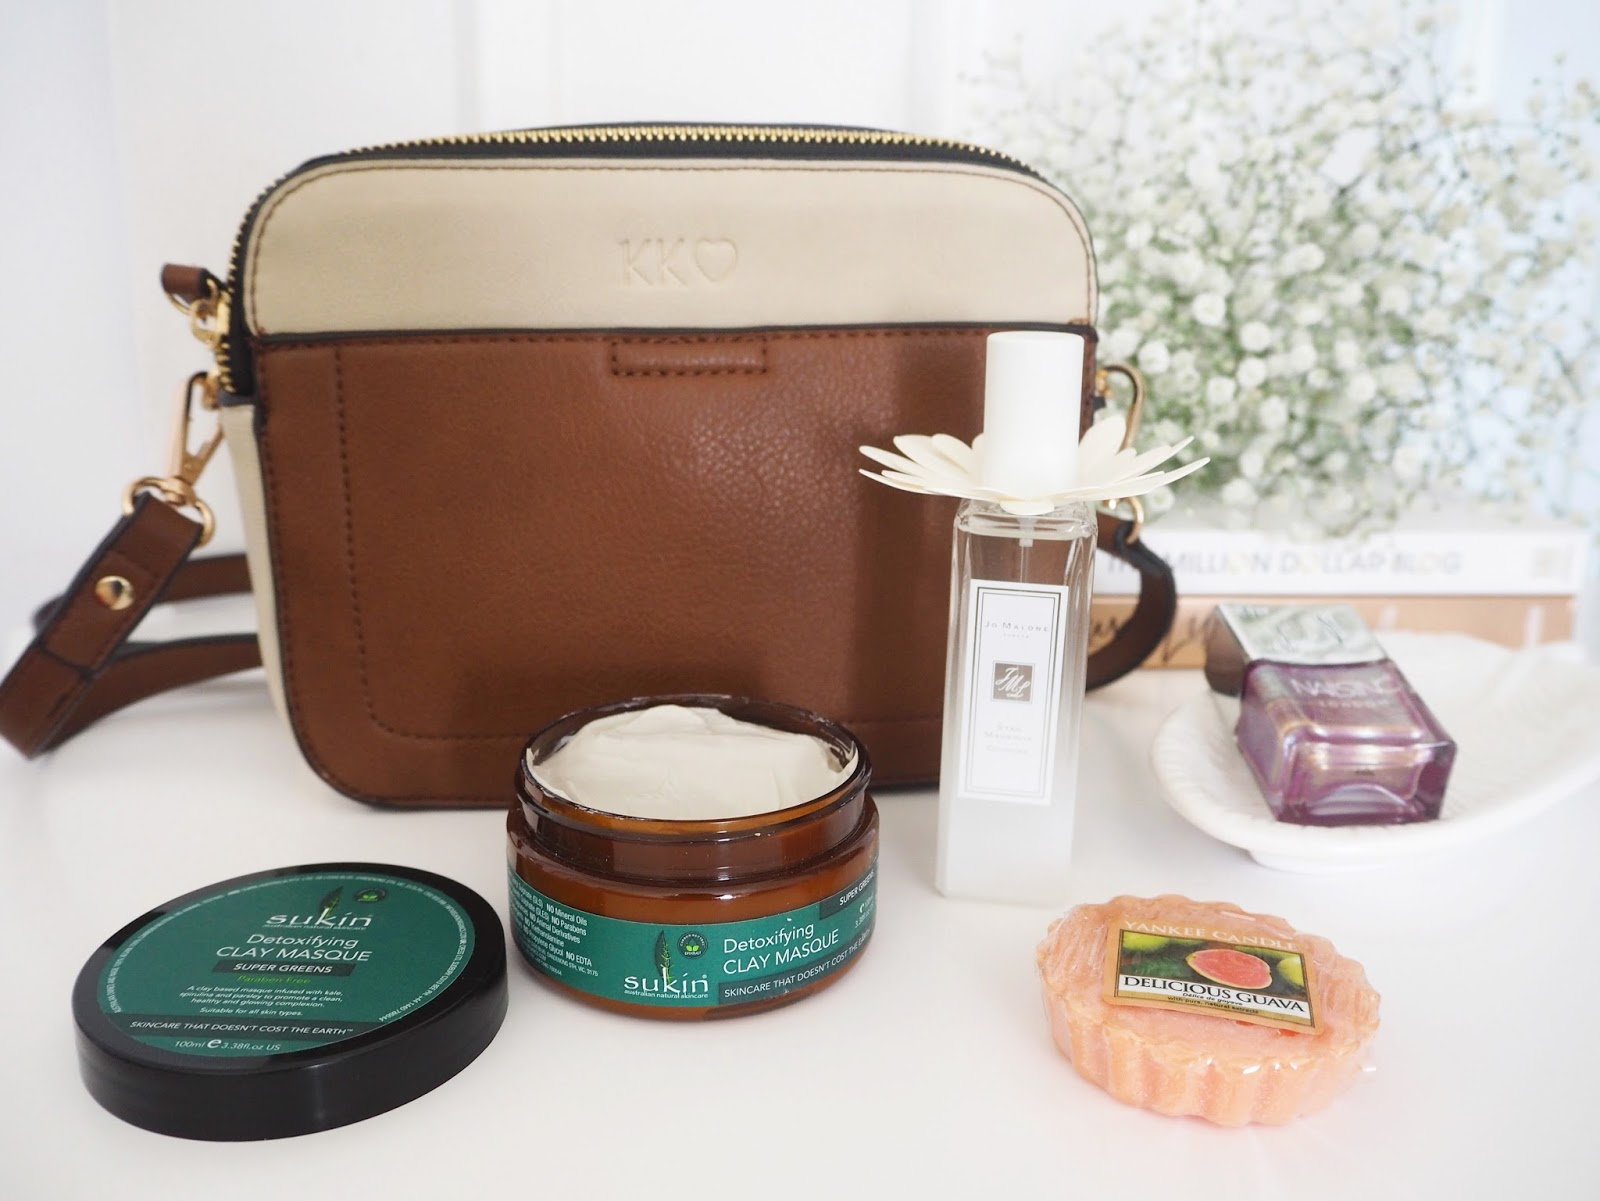 Loves List June, Katie Kirk Loves, UK Blogger, Lifestyle Blogger, Beauty Blogger, Skincare Blogger, Beauty Review, Sukin Skincare, Yankee Candle, Jo Malone, Latest In Beauty, Nails Inc, Camera Bag, Fashion Blogger, Blogger Review